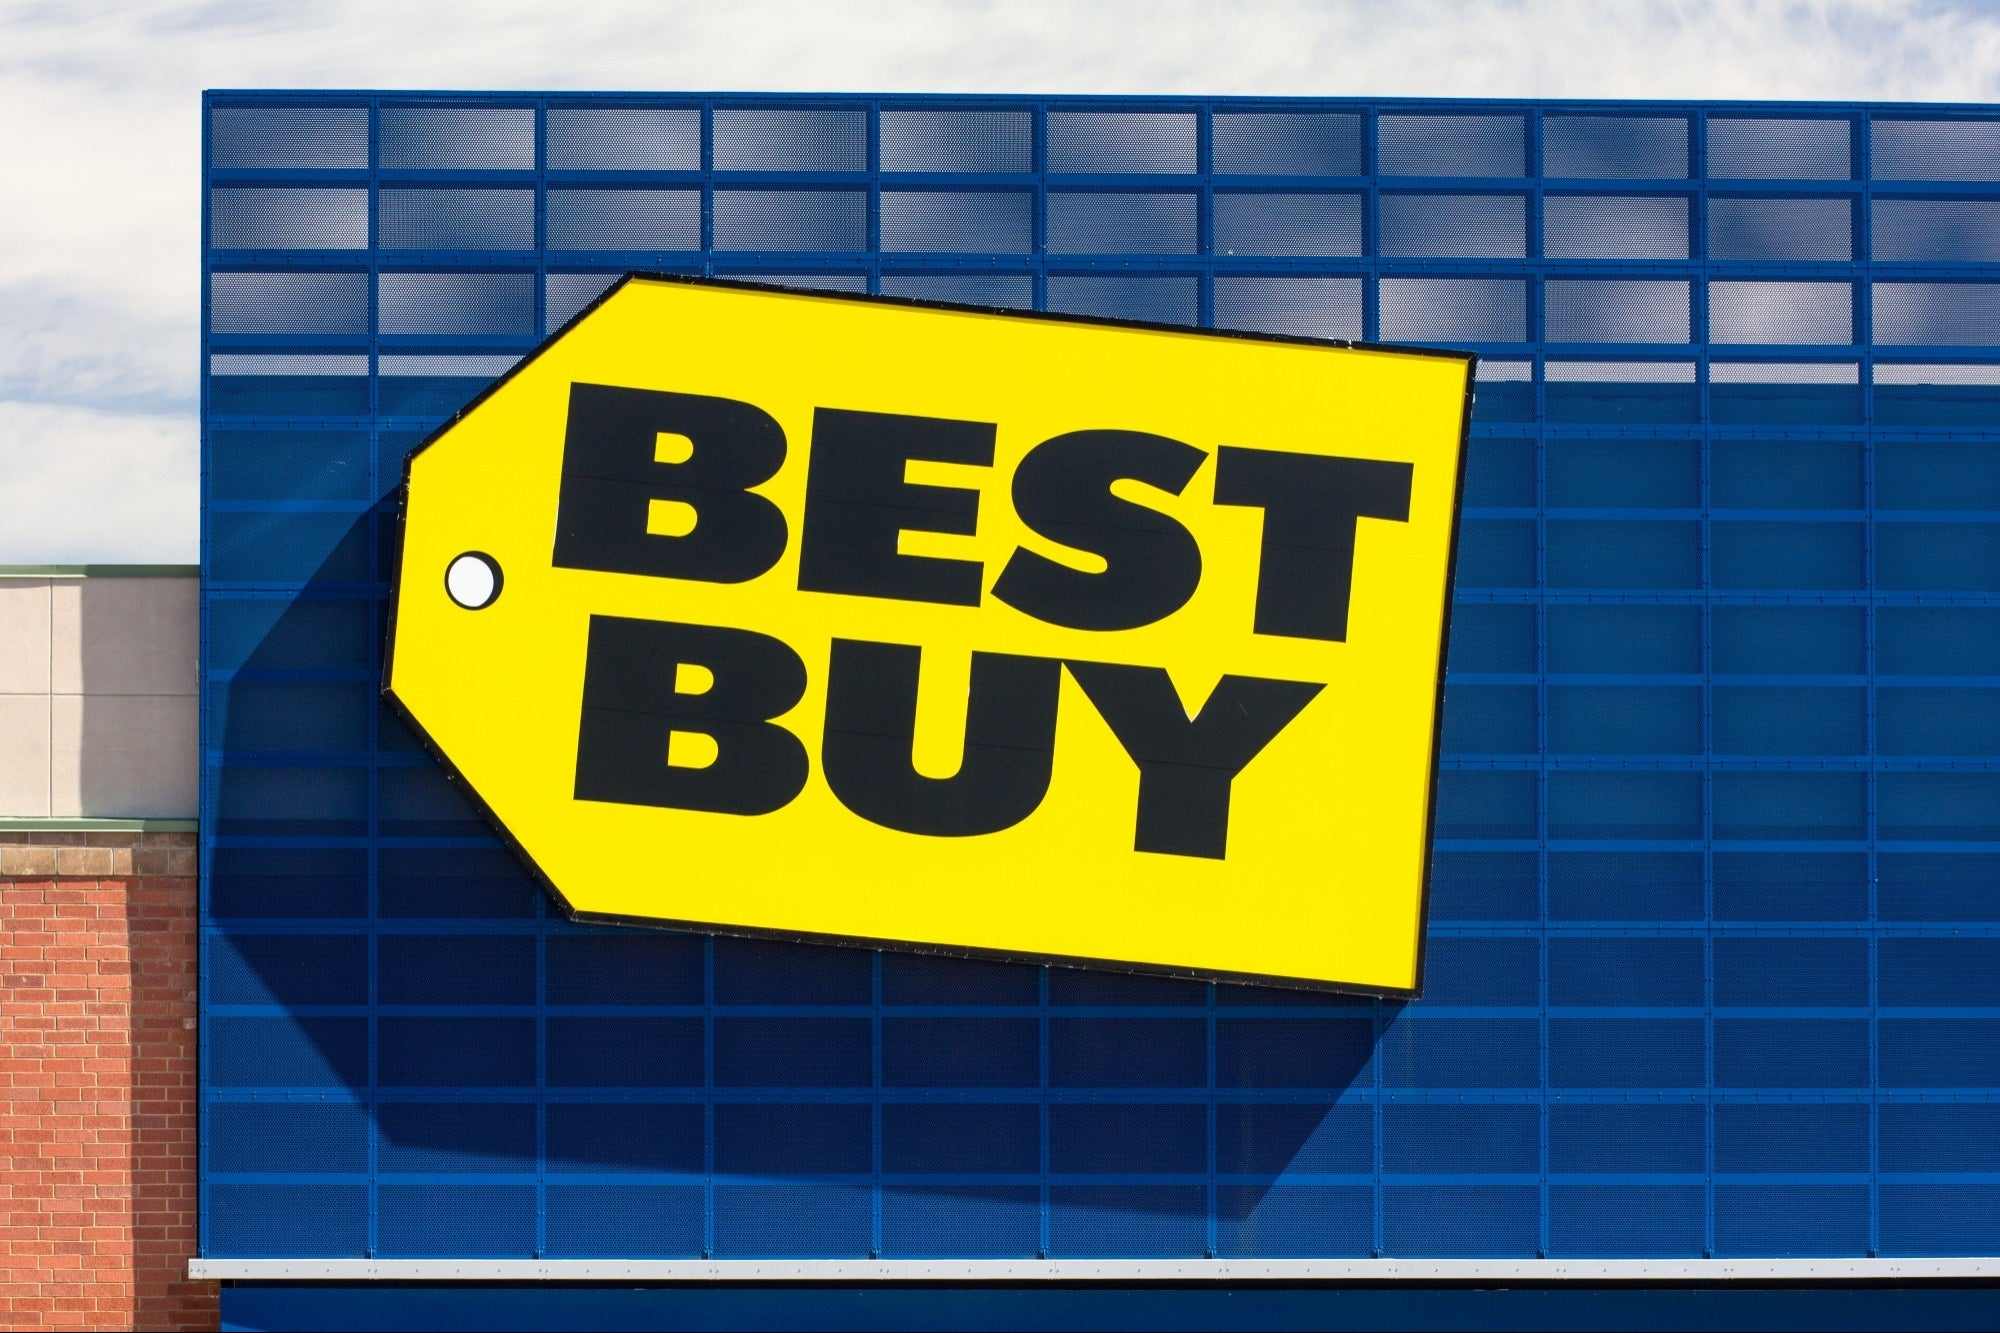 Best Buy is leaving Mexico on December 31st